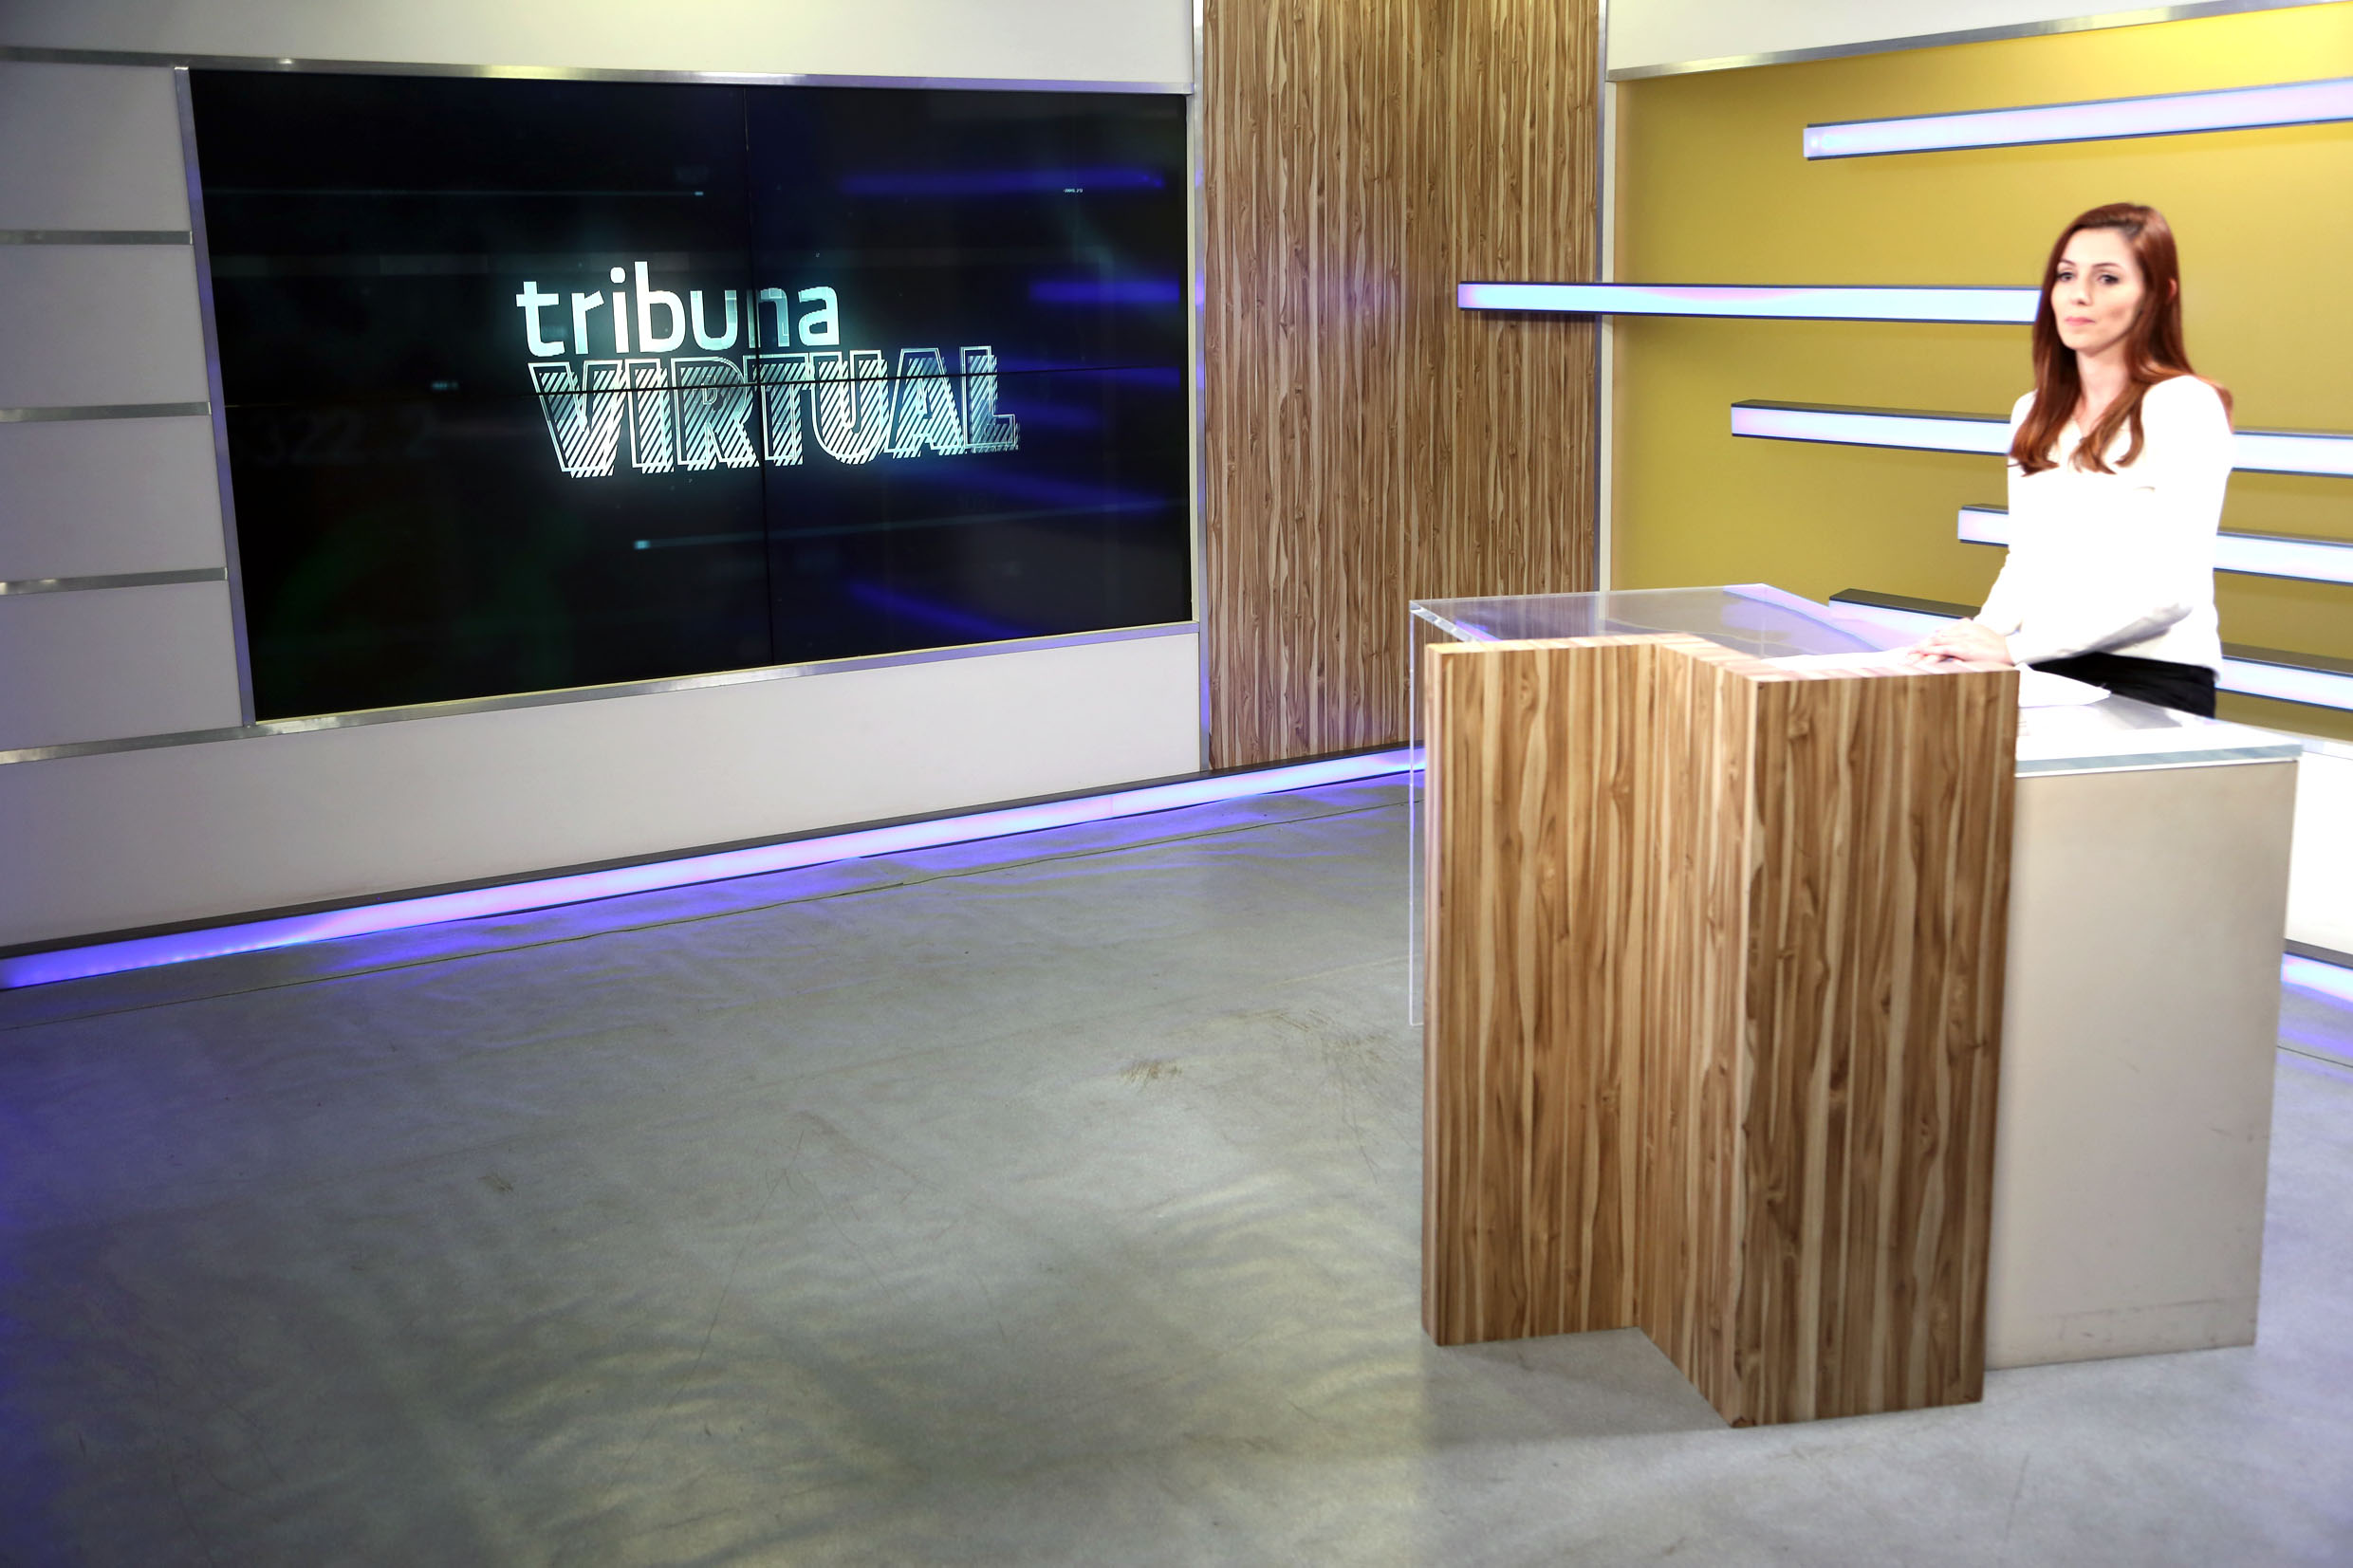 Tribuna Virtual<a style='float:right' href='https://www3.al.sp.gov.br/repositorio/noticia/N-06-2020/fg250050.jpg' target=_blank><img src='/_img/material-file-download-white.png' width='14px' alt='Clique para baixar a imagem'></a>